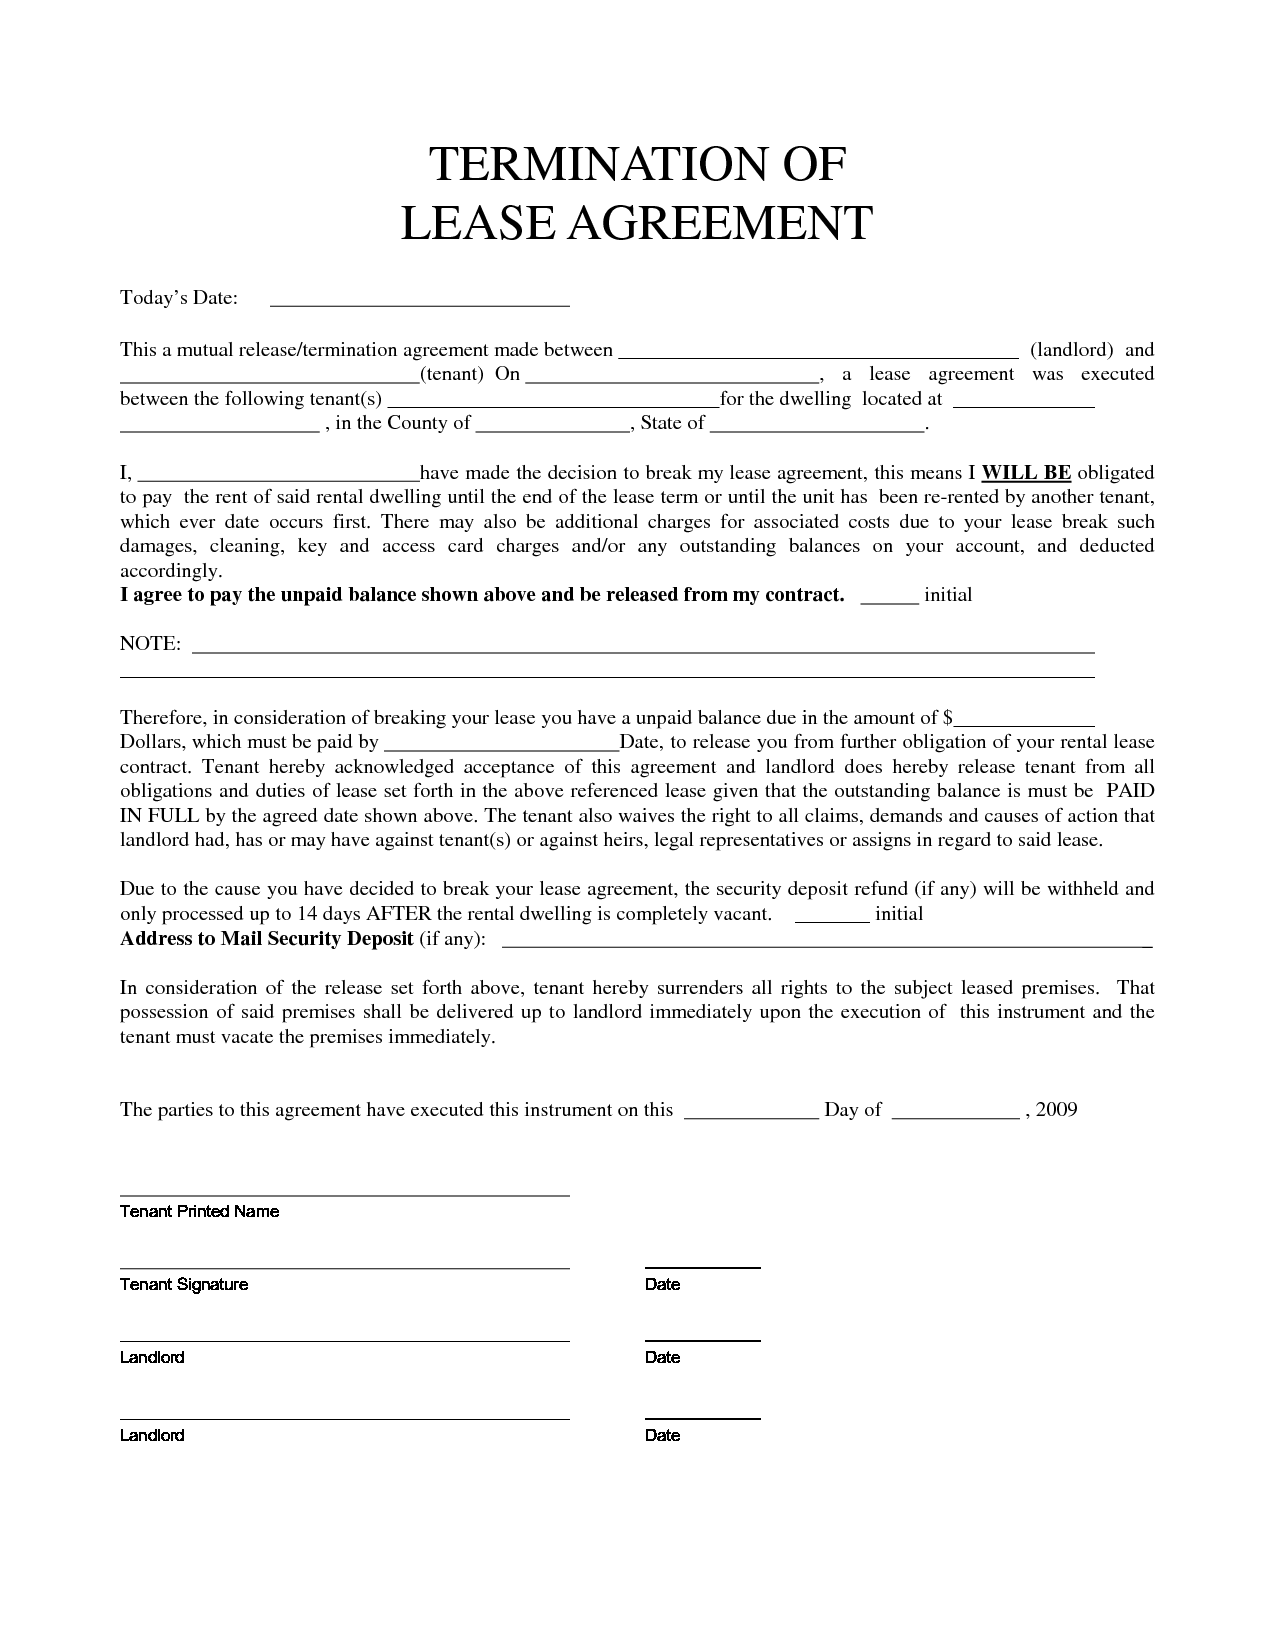 Personal Property Rental Agreement Forms – Lease Agreement Contract